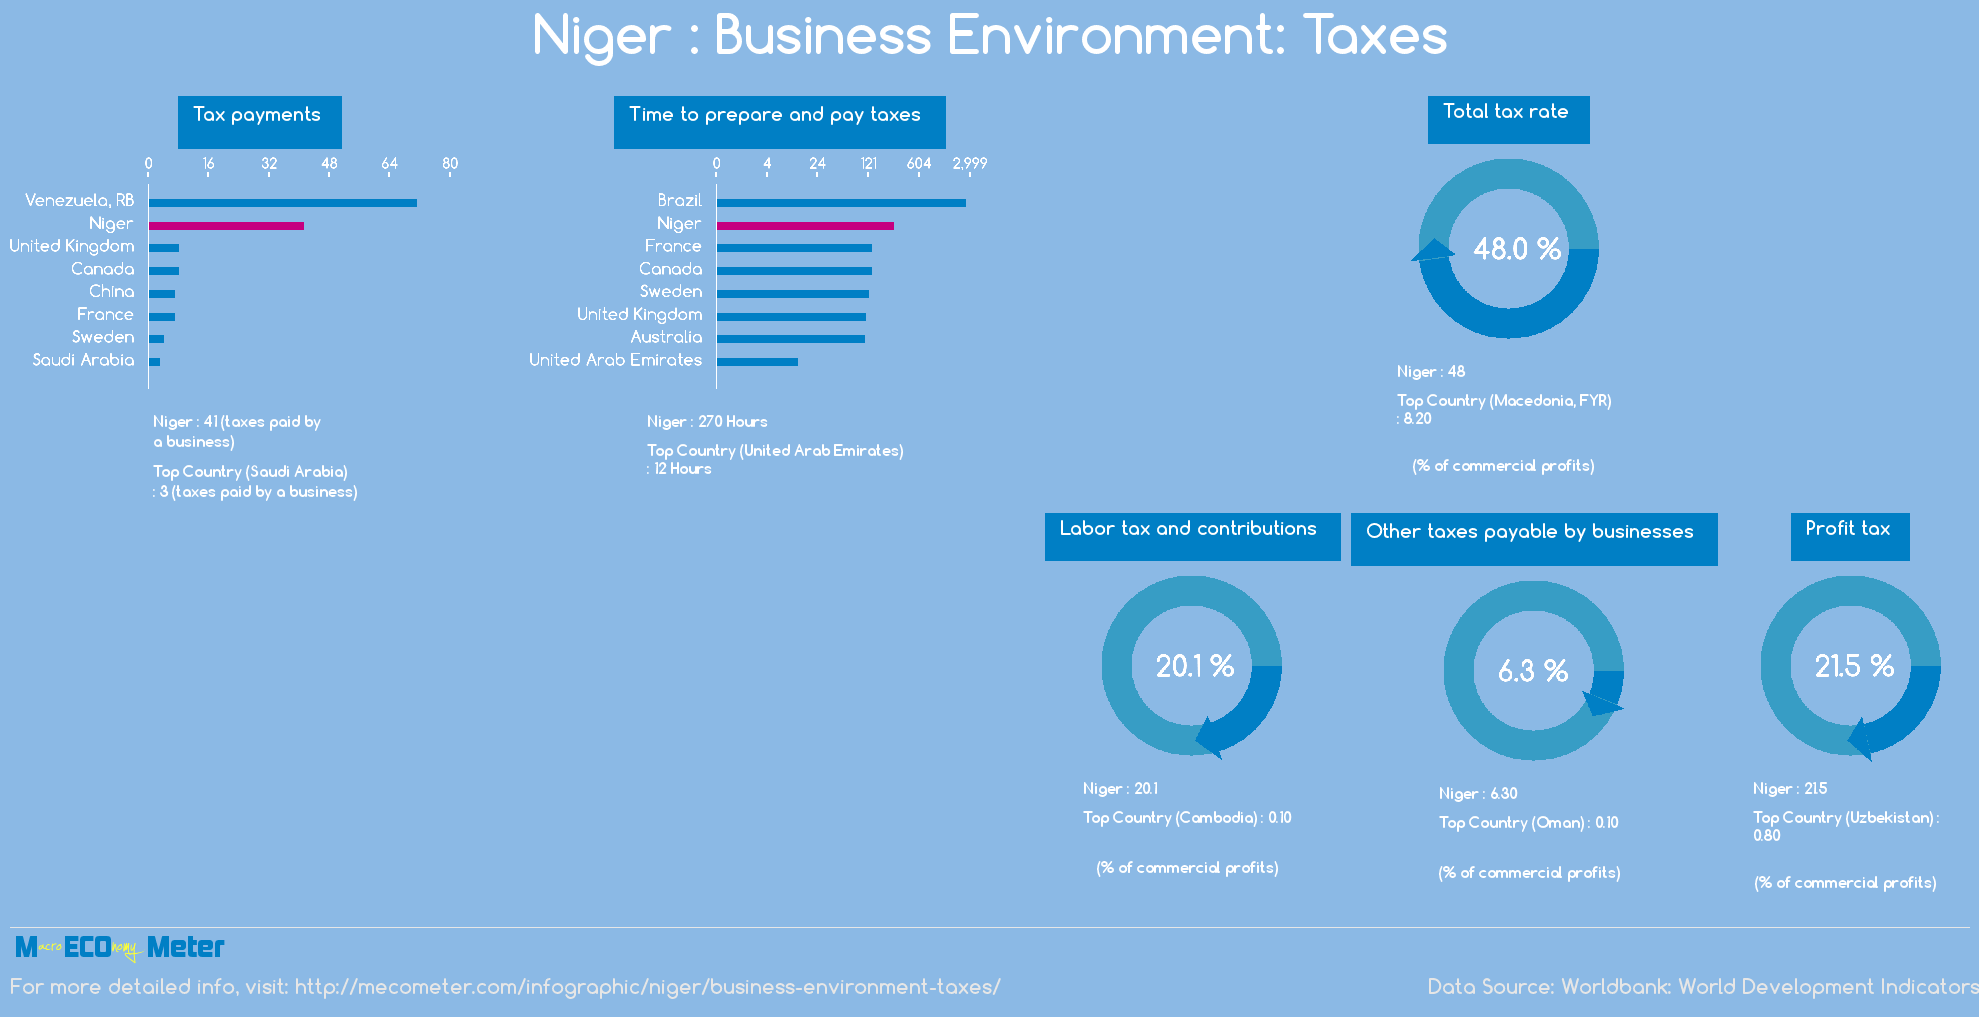 Niger : Business Environment: Taxes